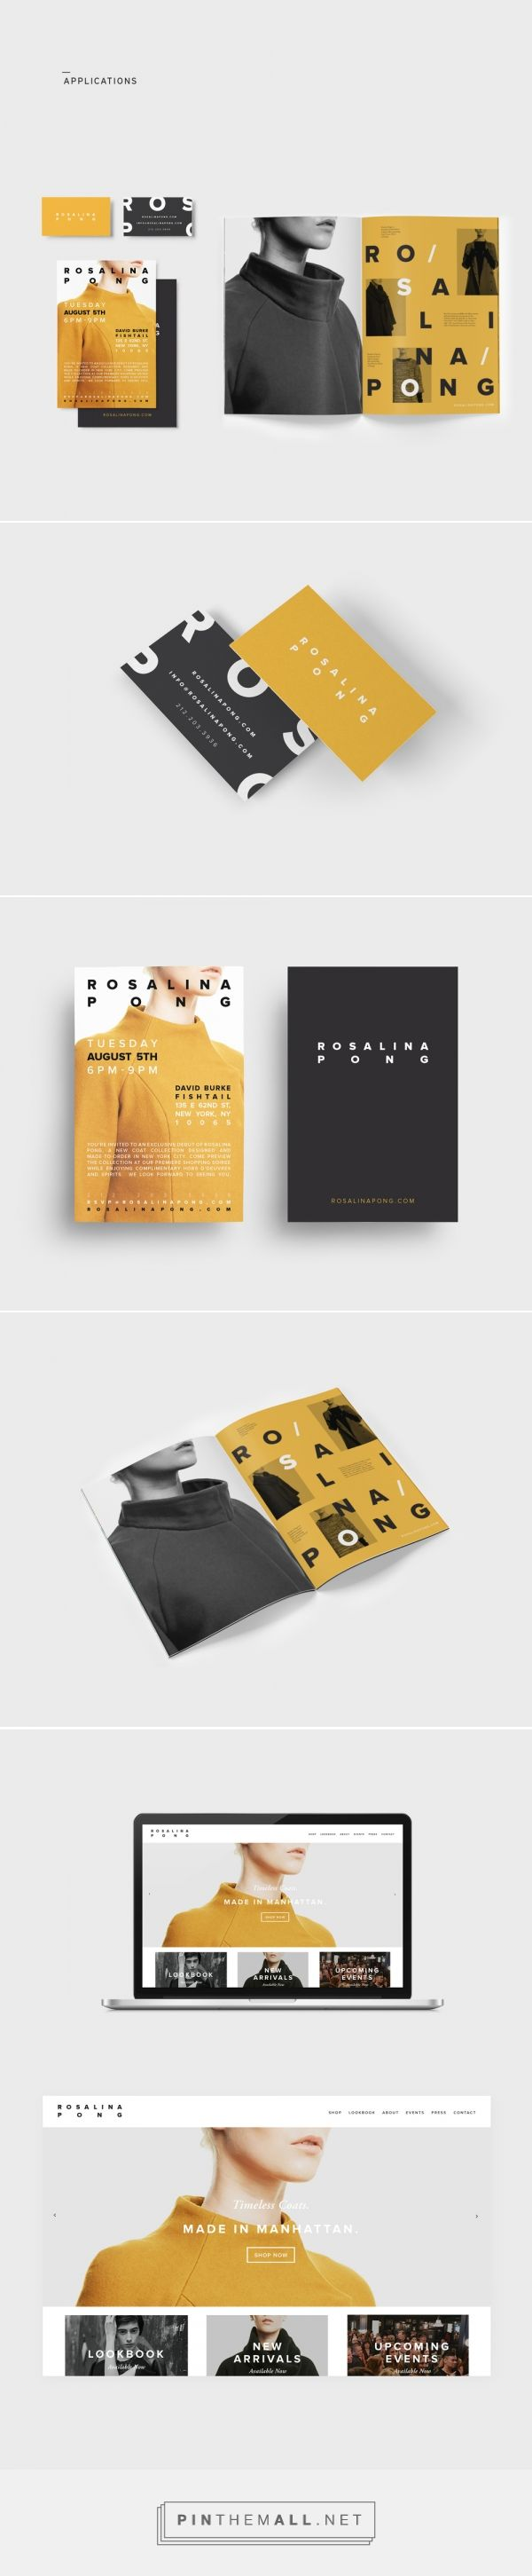 Rosalina Pong Branding by Saxon Campbell | Fivestar Branding – Design and Branding Agency & Inspiration Gallery